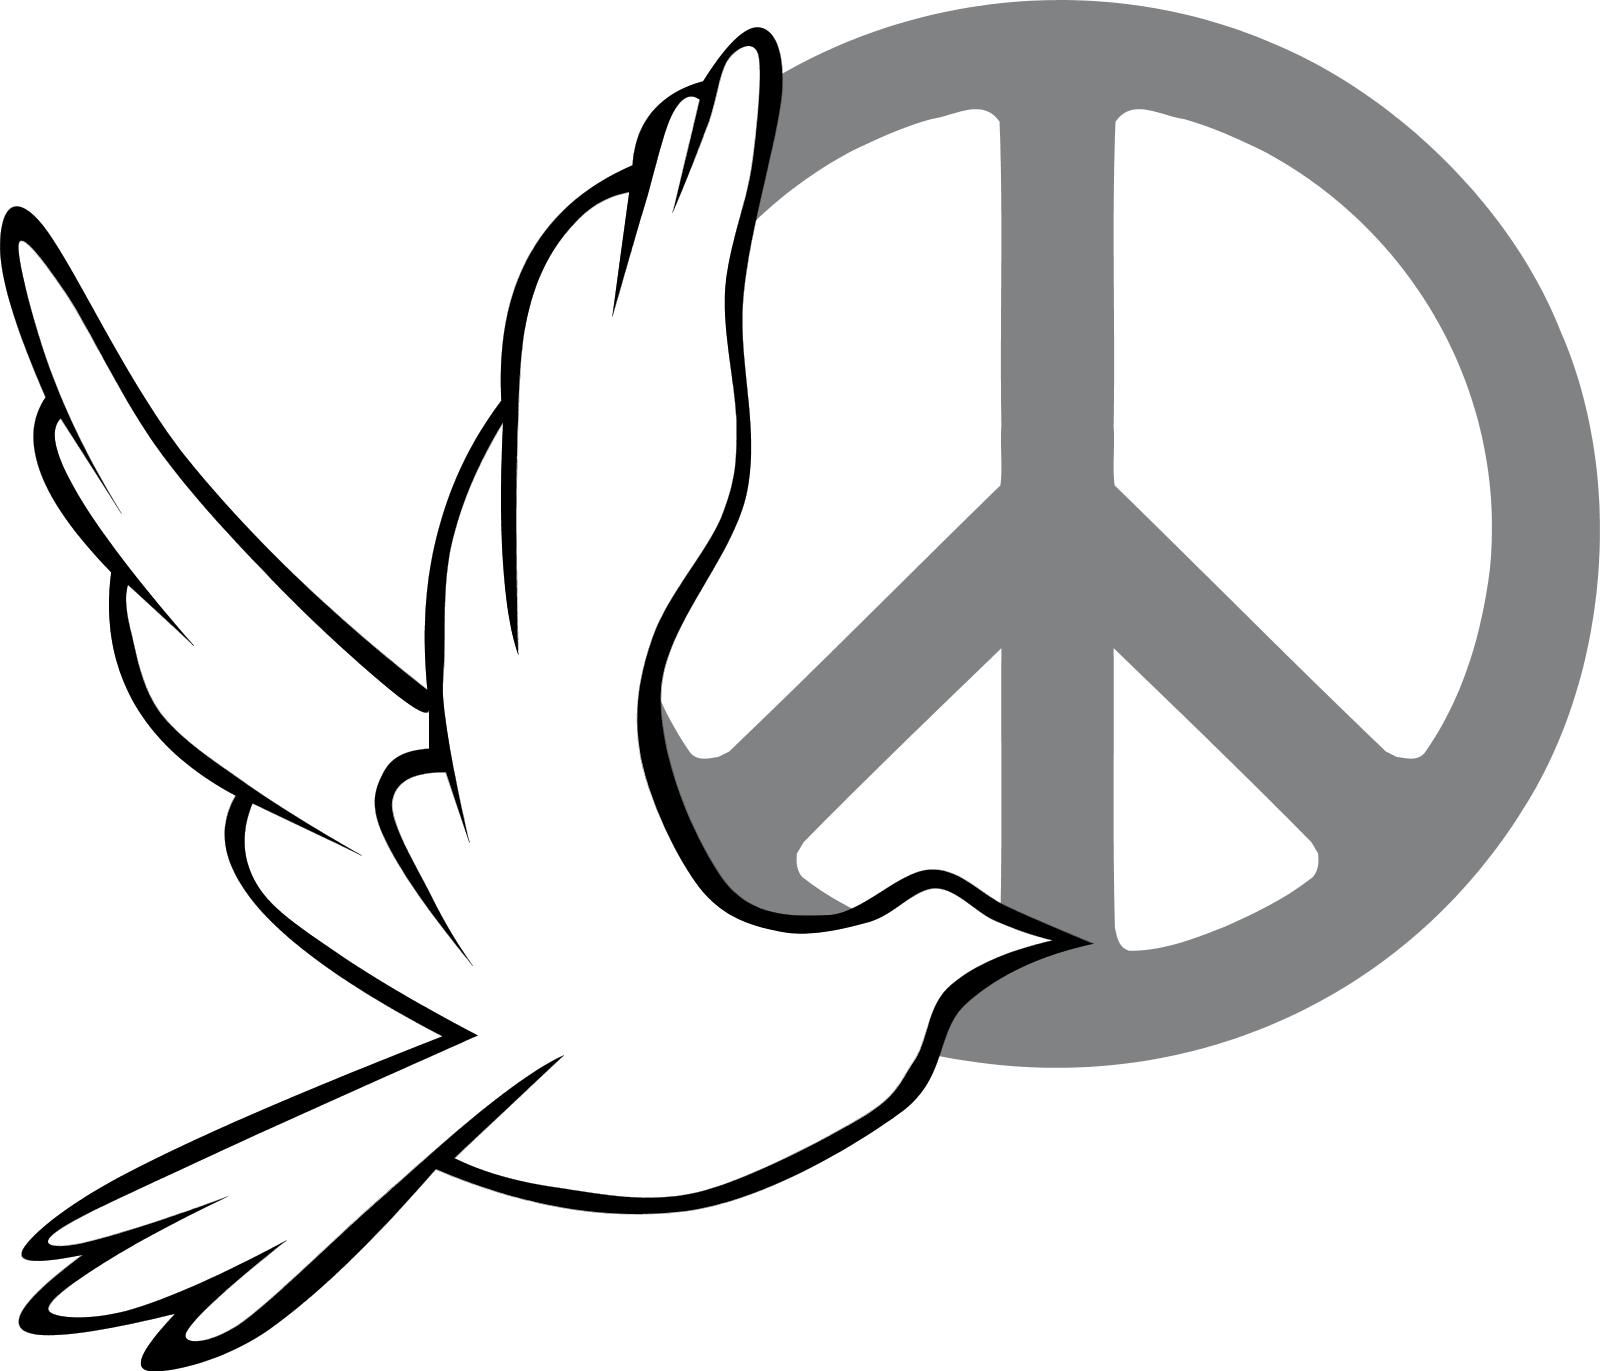 Green Outline Dove Symbol The Dove Represents Peace Love Freedom further Peace Sign Coloring Pages besides Chackmon additionally 4792 A Paz  o Do Do Espirito O Fruto Do Espirito 9 moreover Announcing The Baphomet Mystery Club. on sion fire